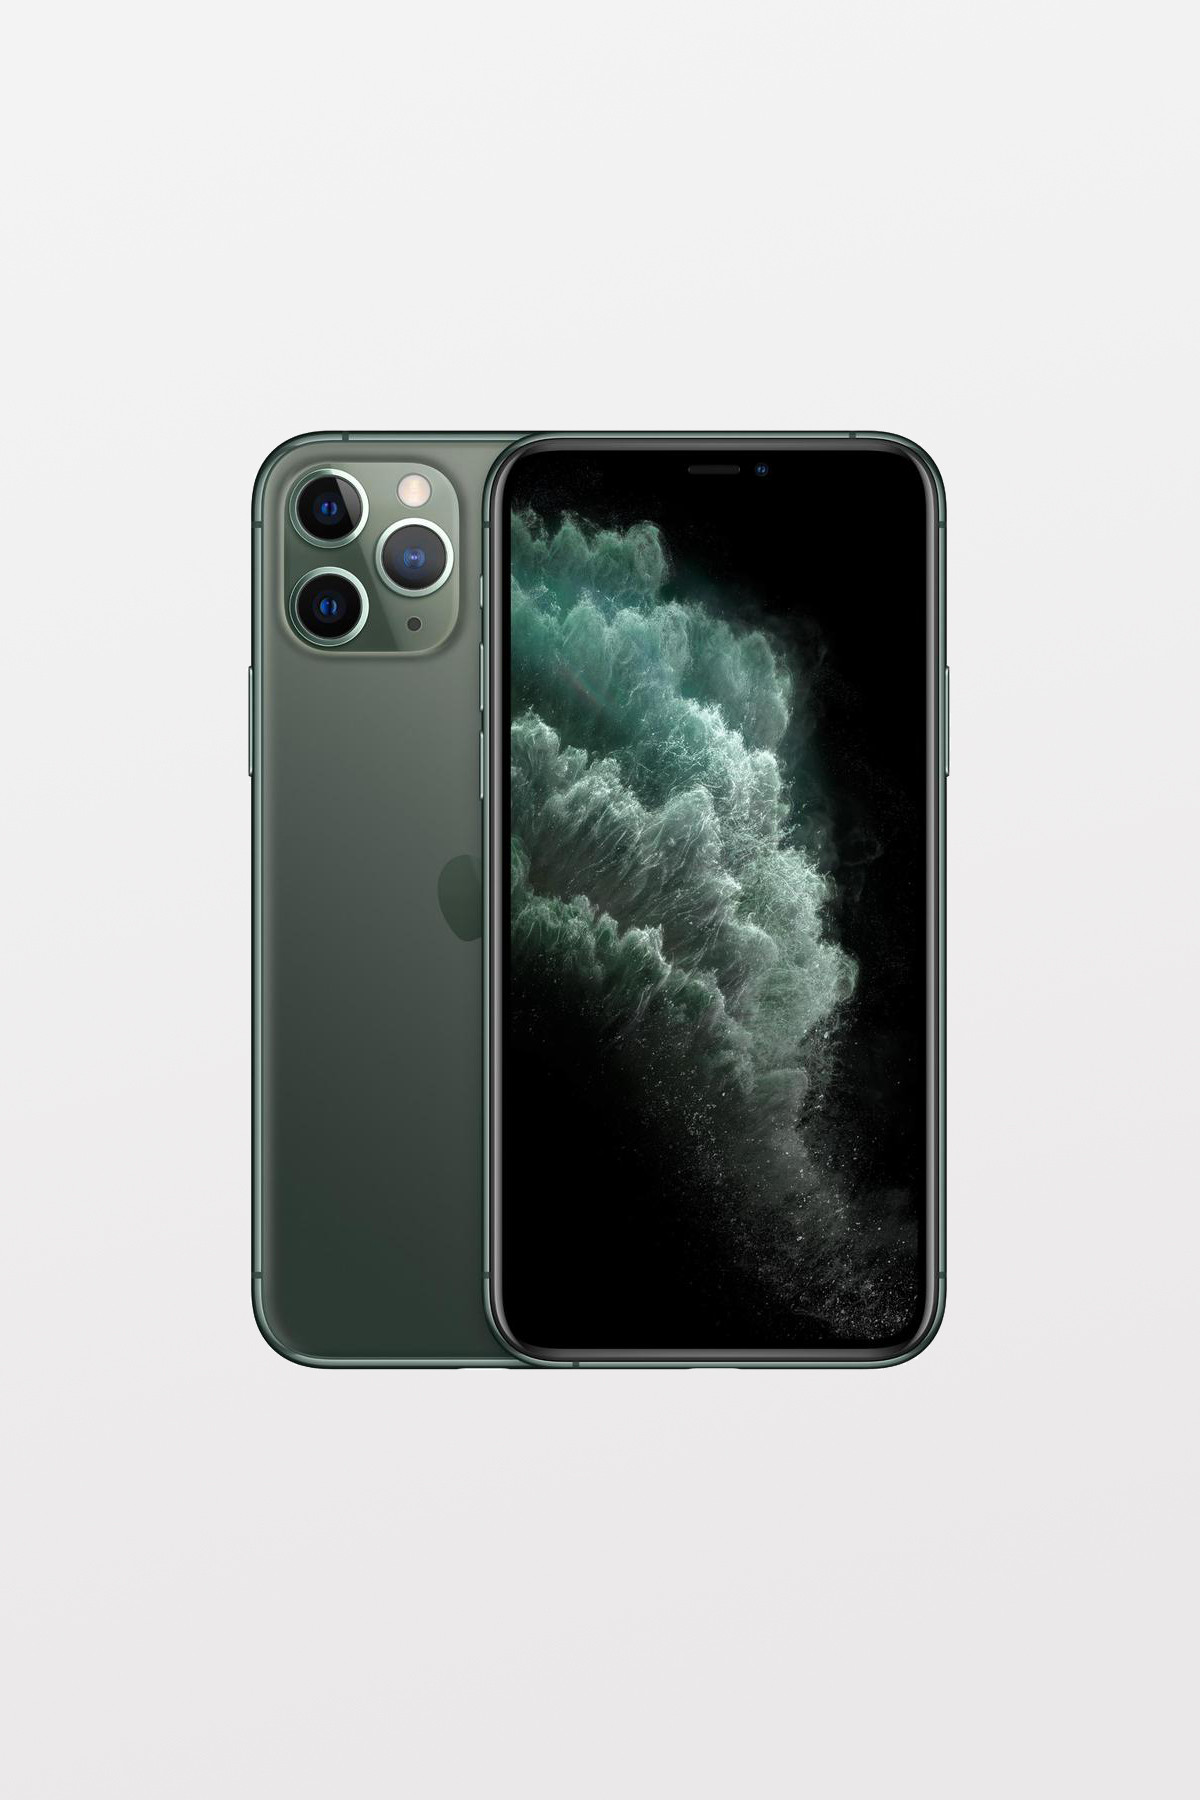 iPhone 11 Pro 512GB - Midnight Green - Scratch and Dent